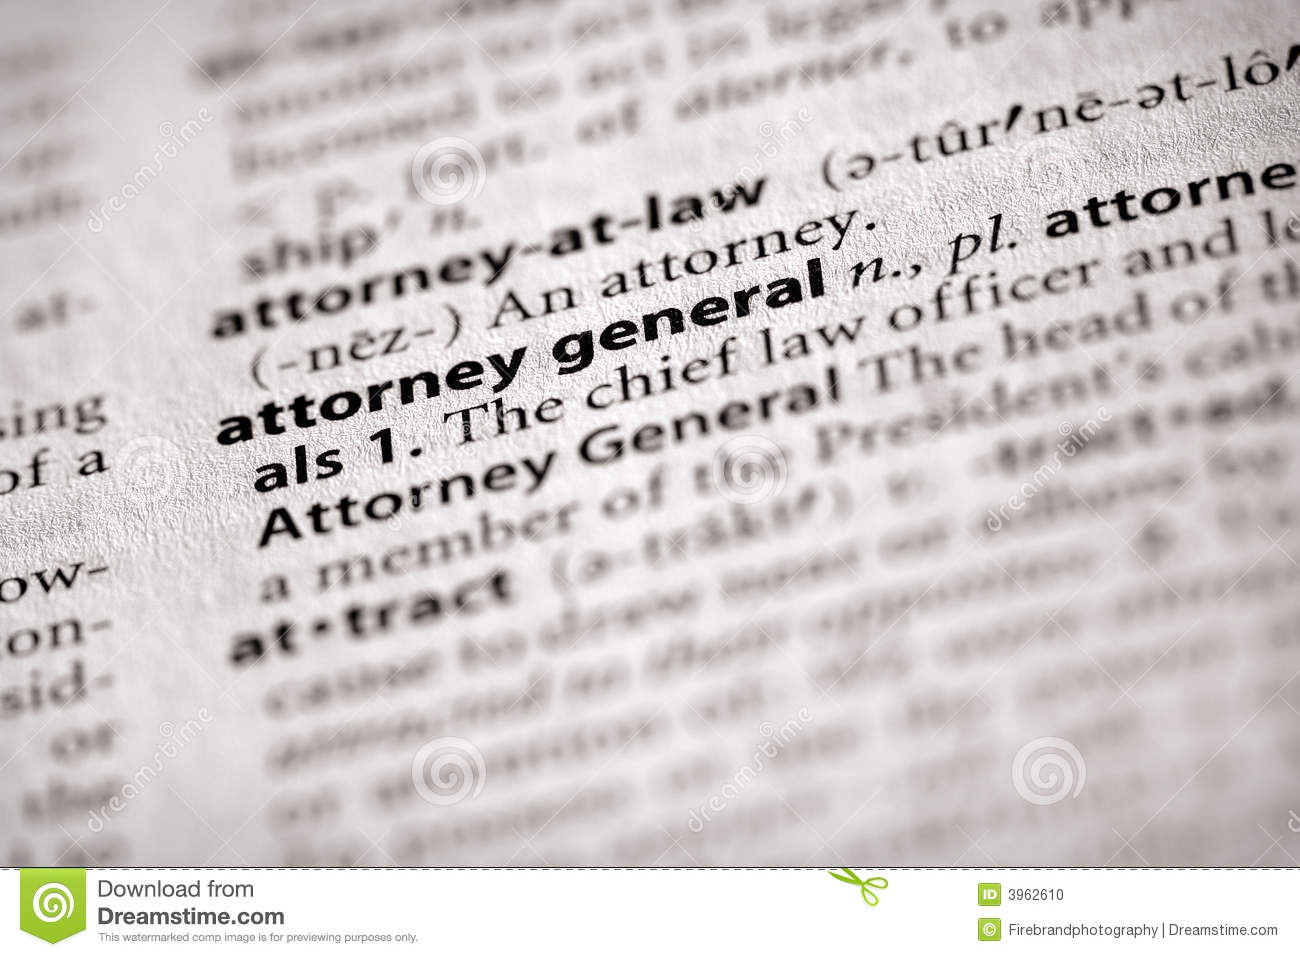 Attorney General Dictionary Meaning